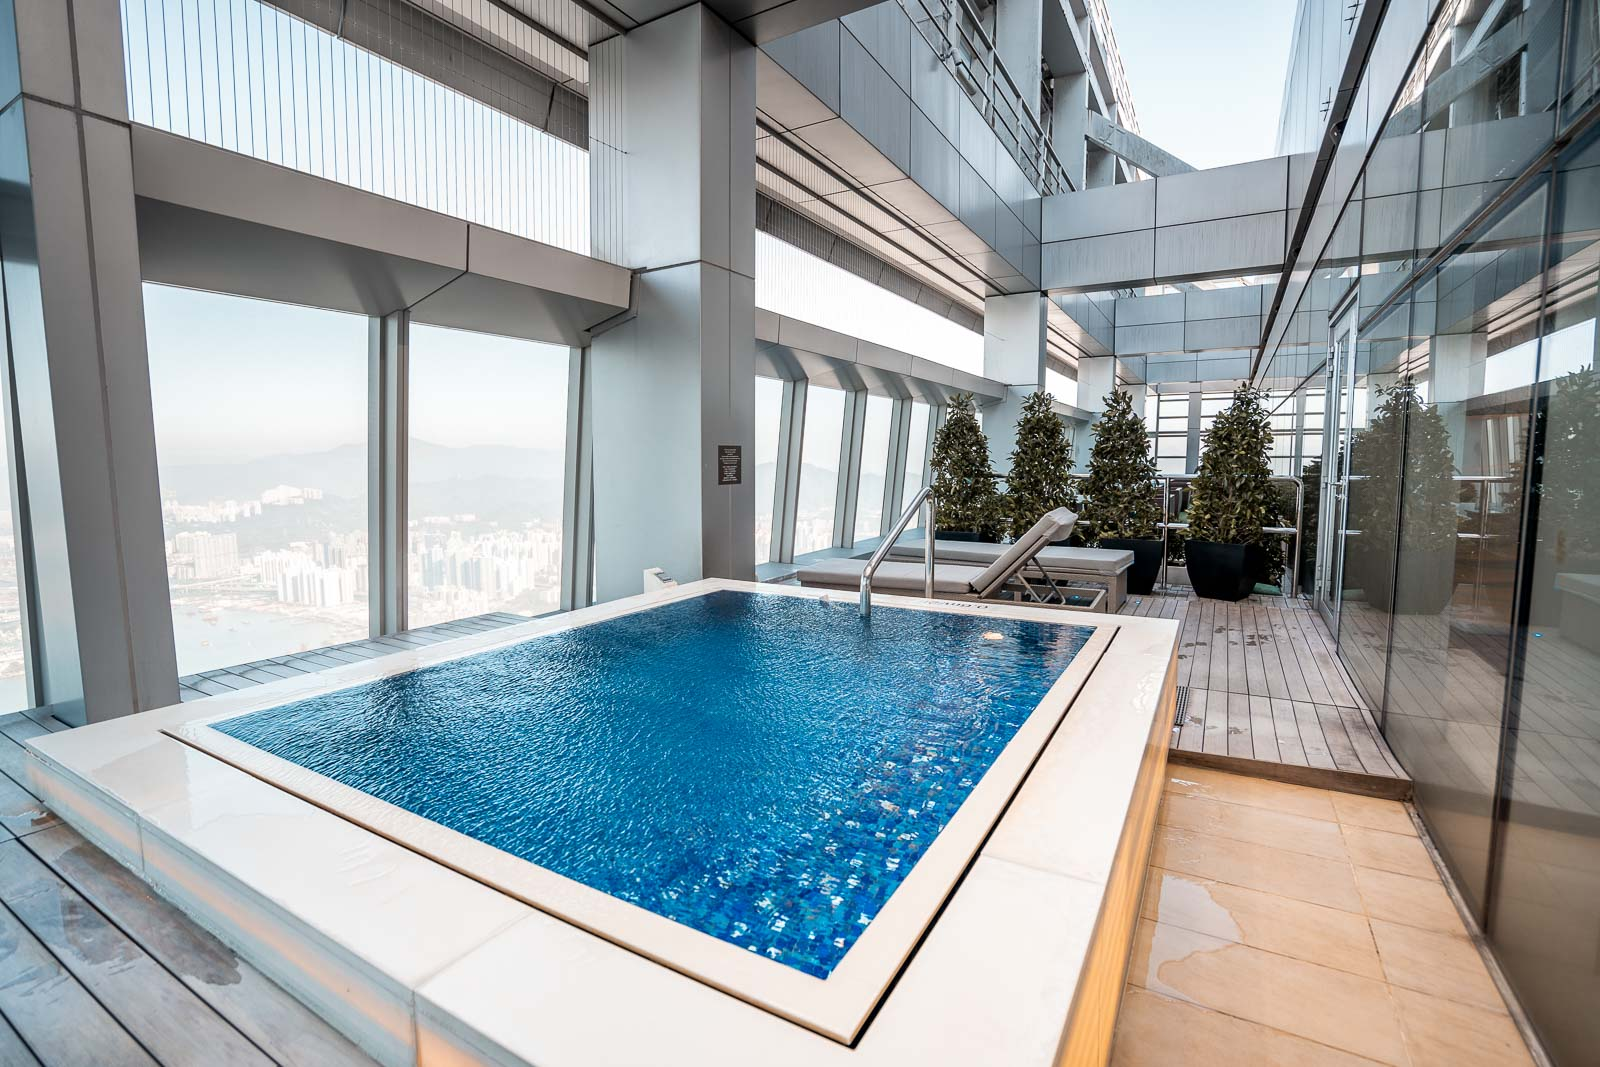 Hot tub on the terrace